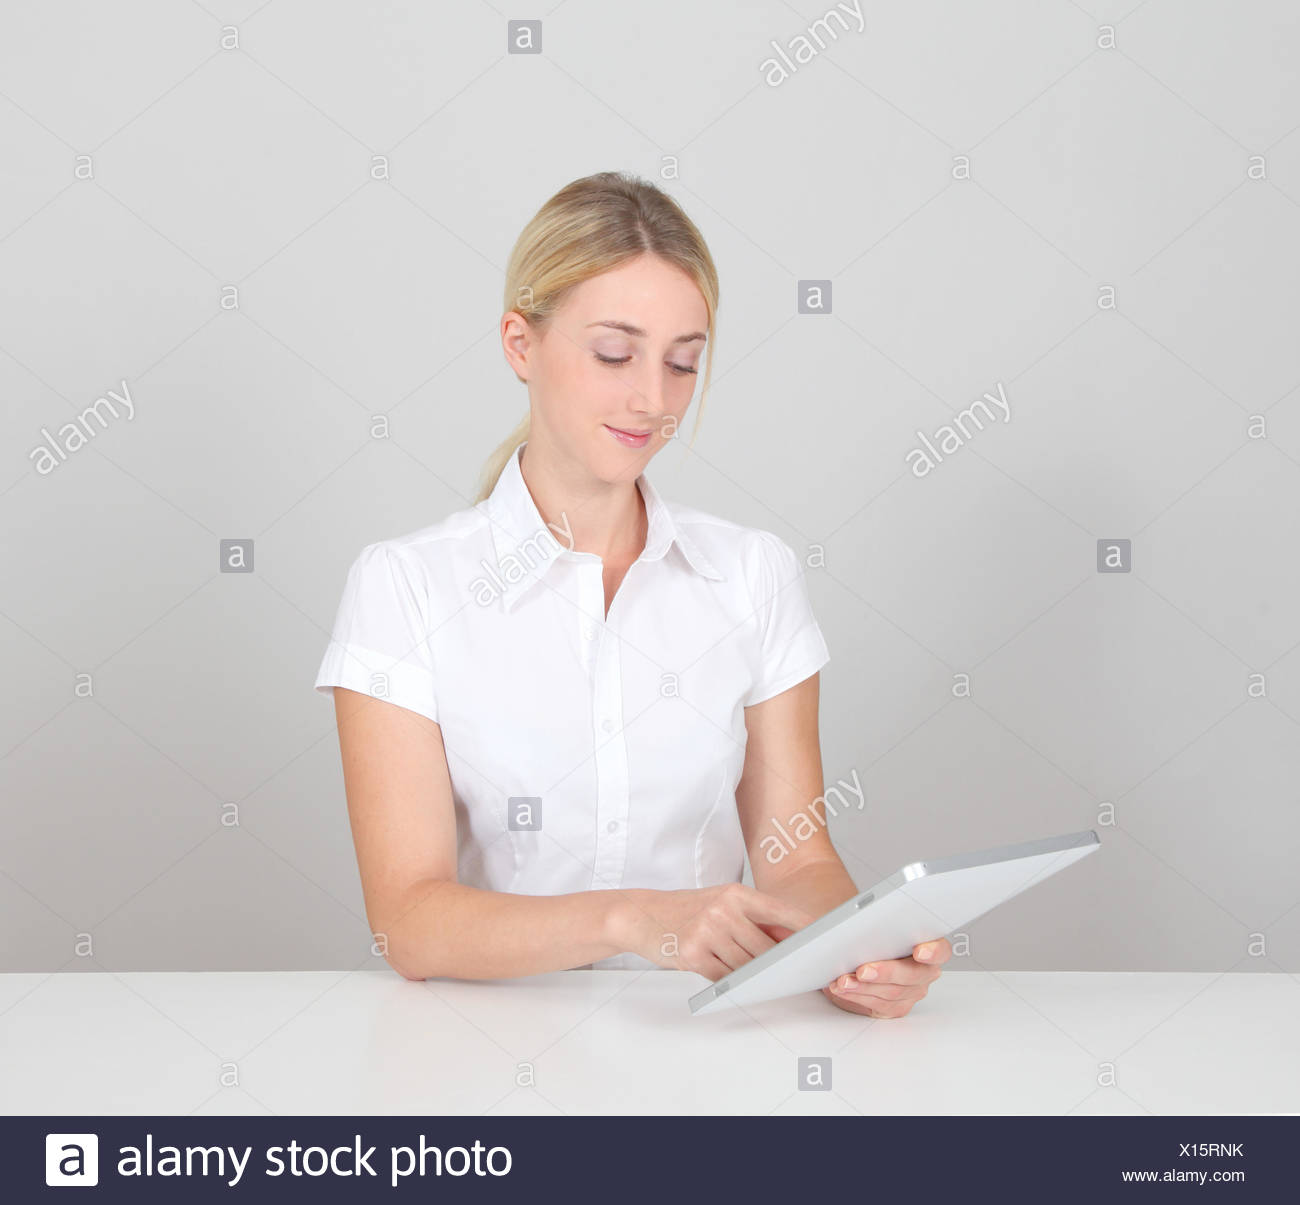 Woman on white background using electronic tablet - Stock Image